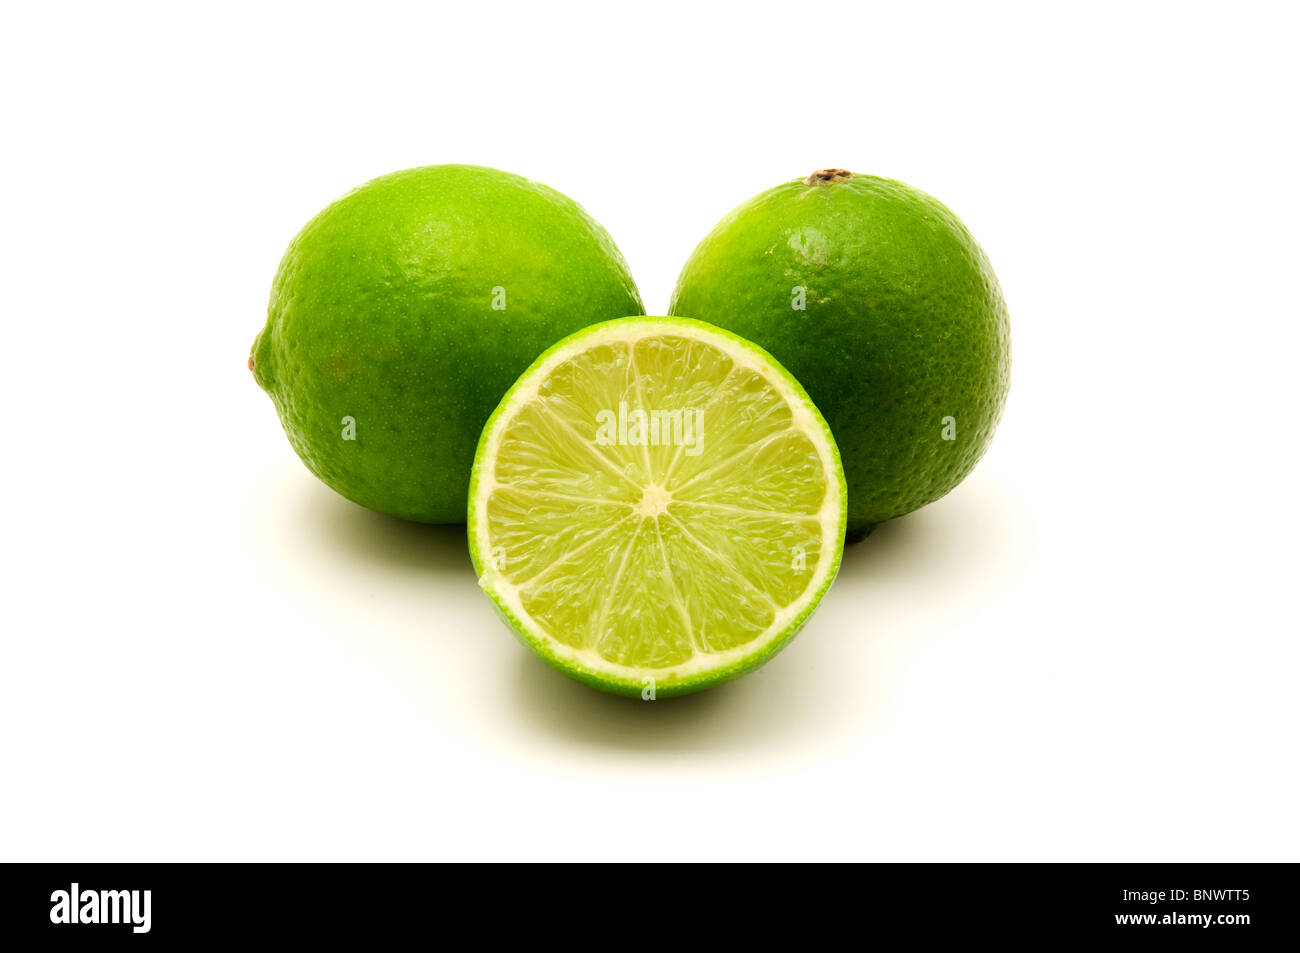 Persian limes on a white background - Stock Image